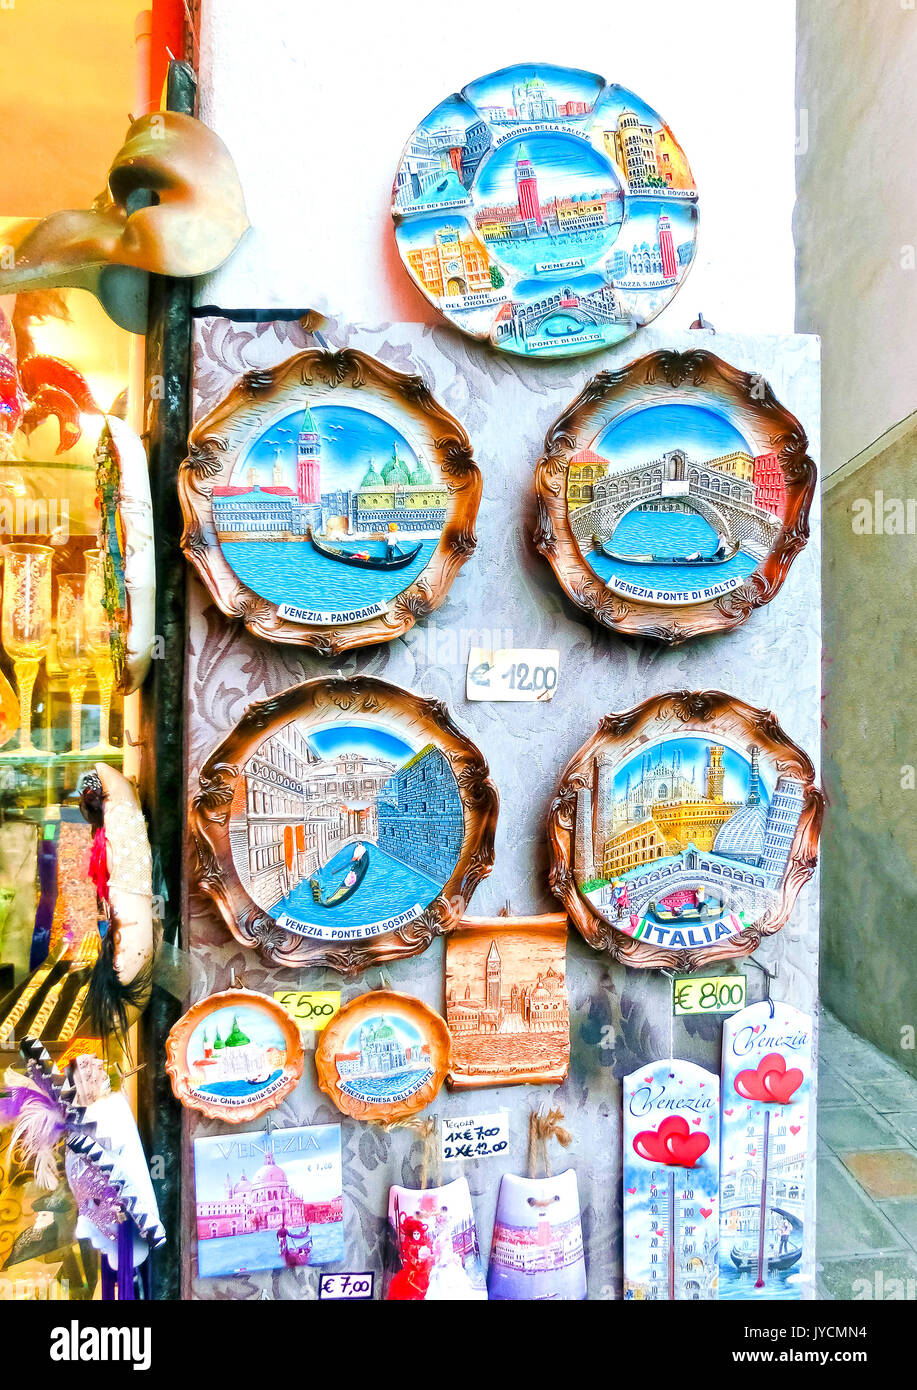 Venice, Italy - May 04, 2017: Vendors stands - profitable and popular form of sales traditional souvenirs and gifts like masks, magnets, clothes and travel guides to tourists visiting Venice. - Stock Image